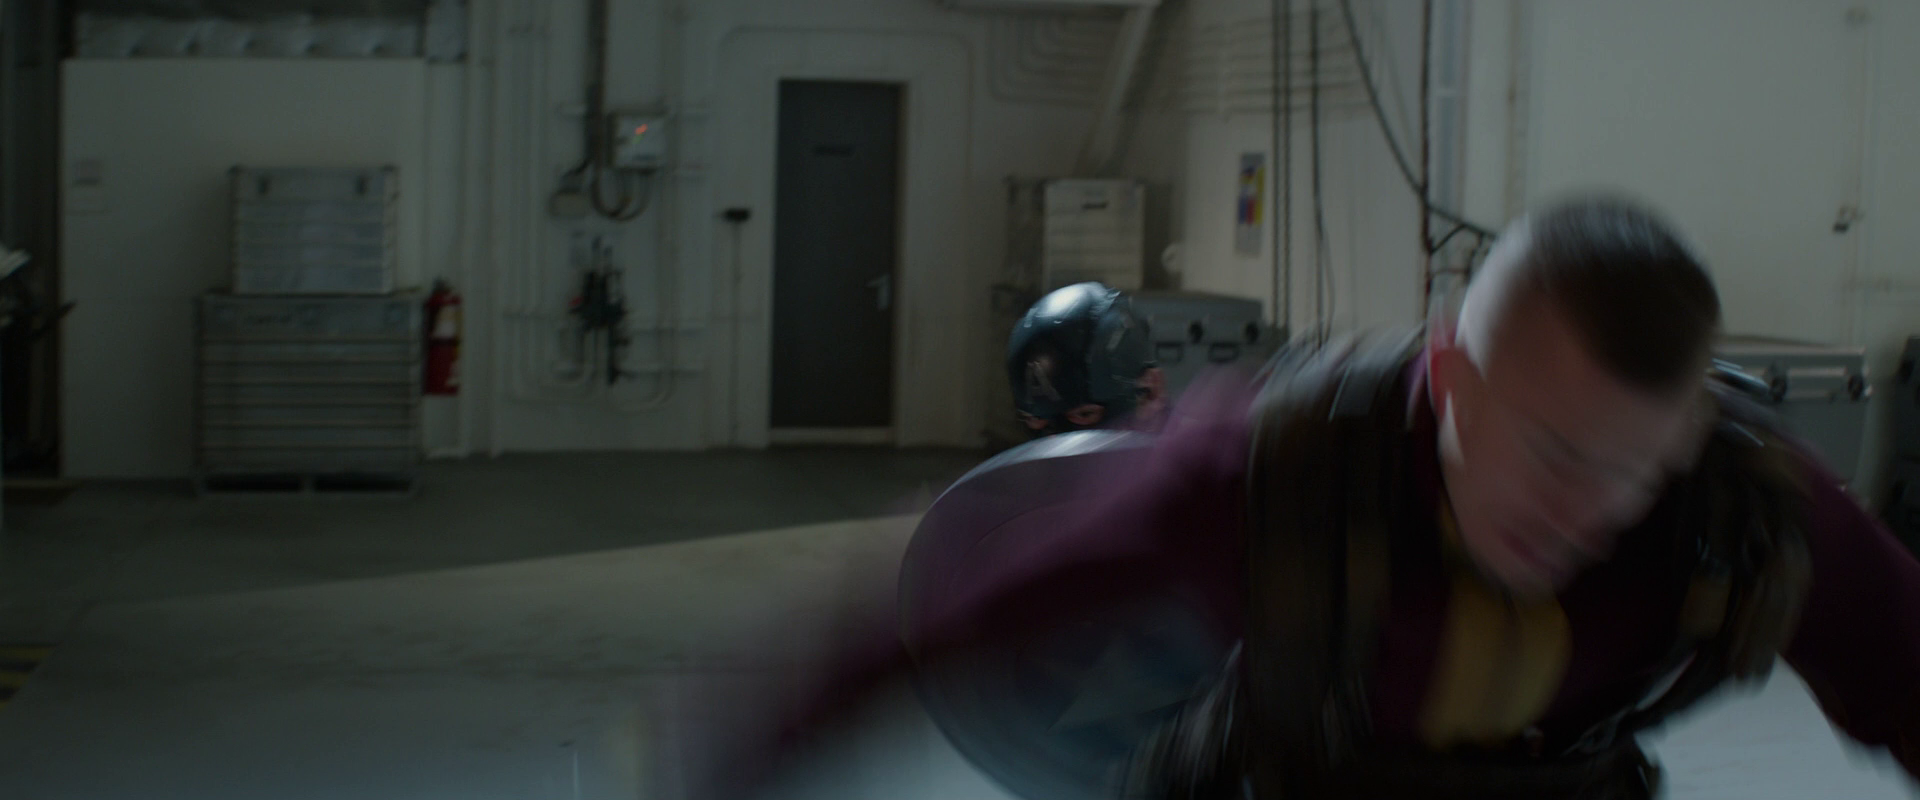 Captain America The Winter Soldier 2014 1080p BluRay DTS x264-DON